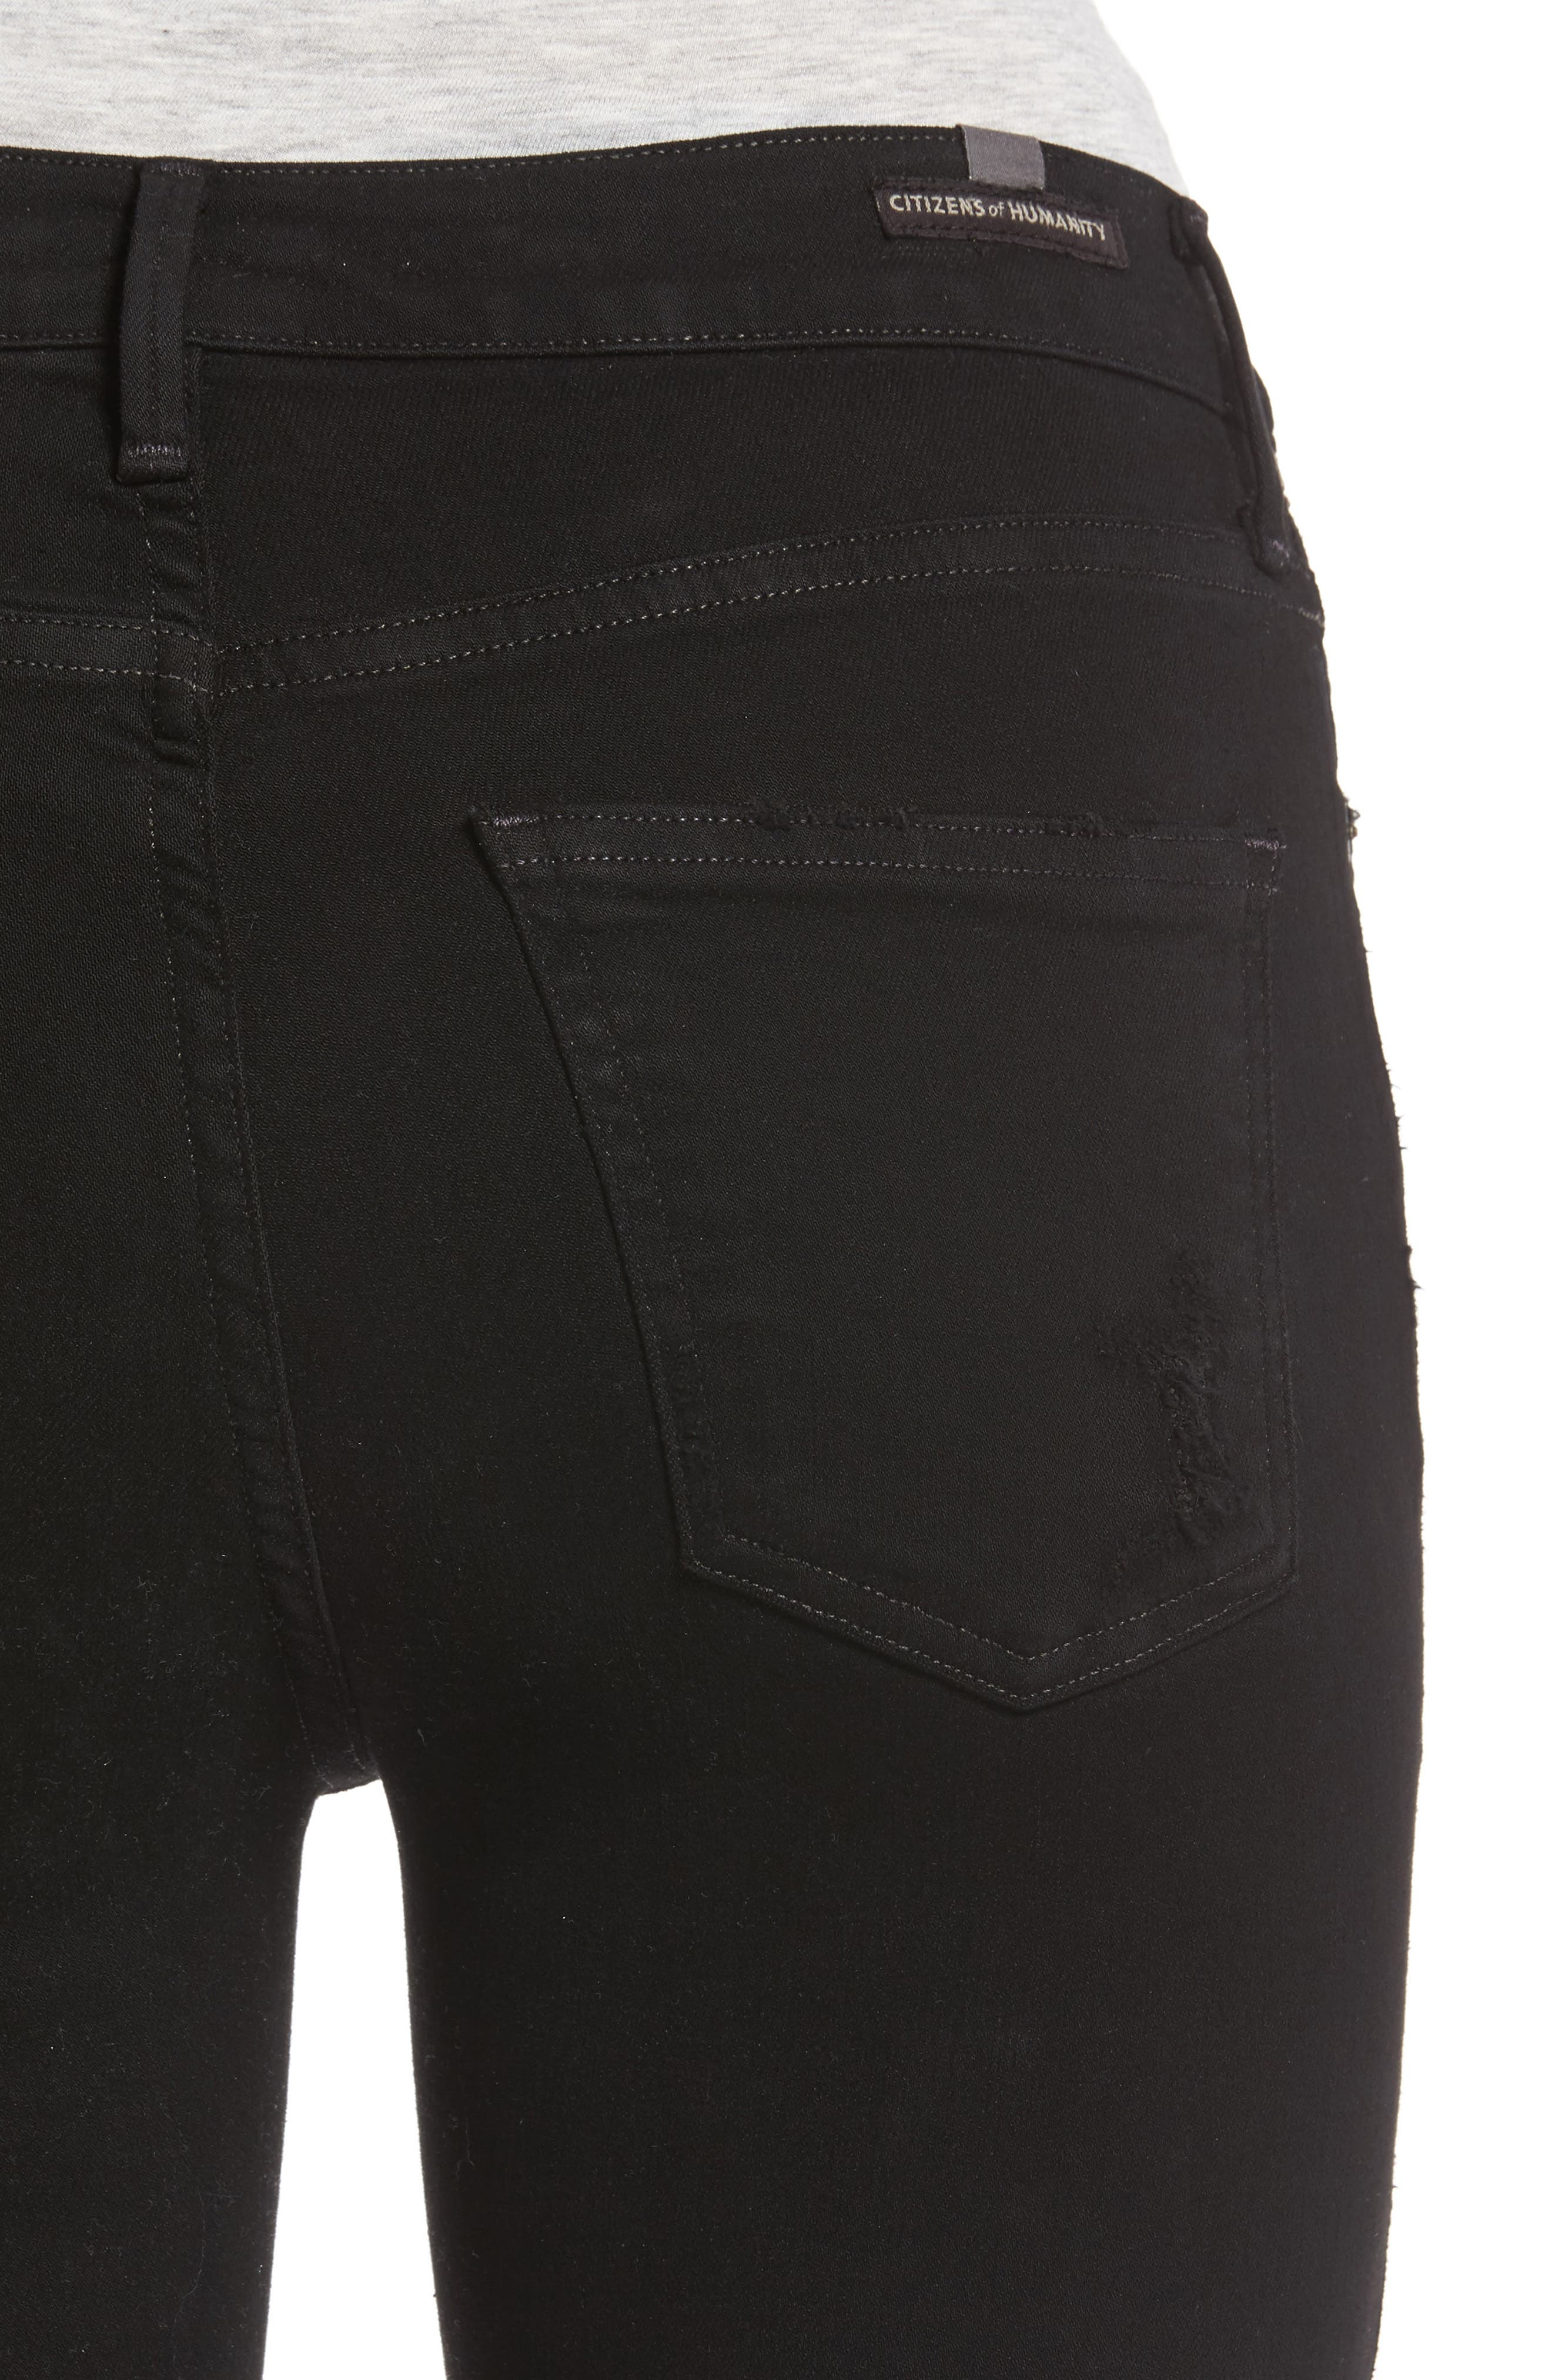 Alternate Image 4  - Citizens of Humanity Rocket High Waist Skinny Jeans (Black Echoes)